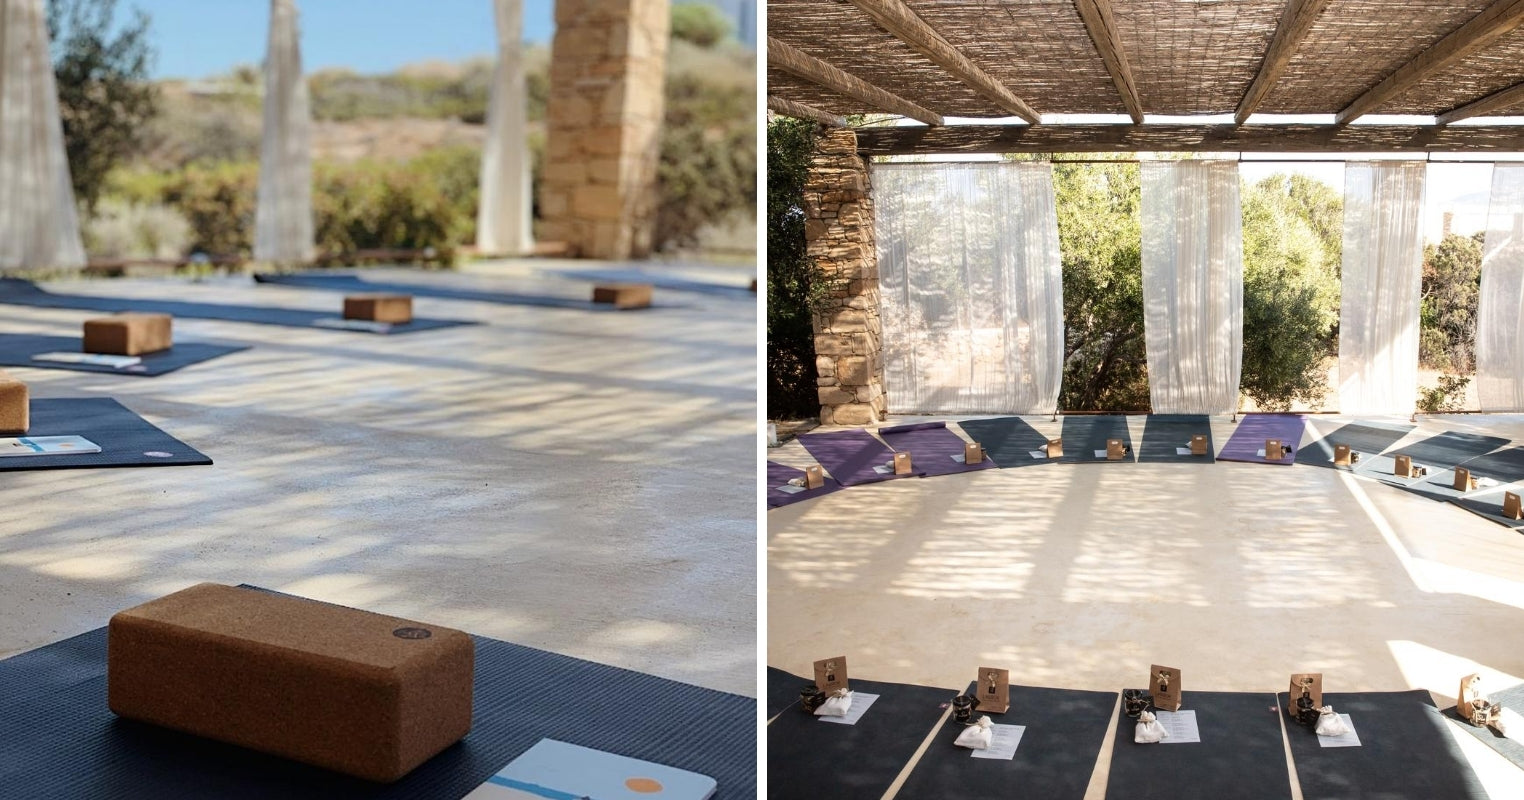 Manduka Equipment at Fykiada Retreats